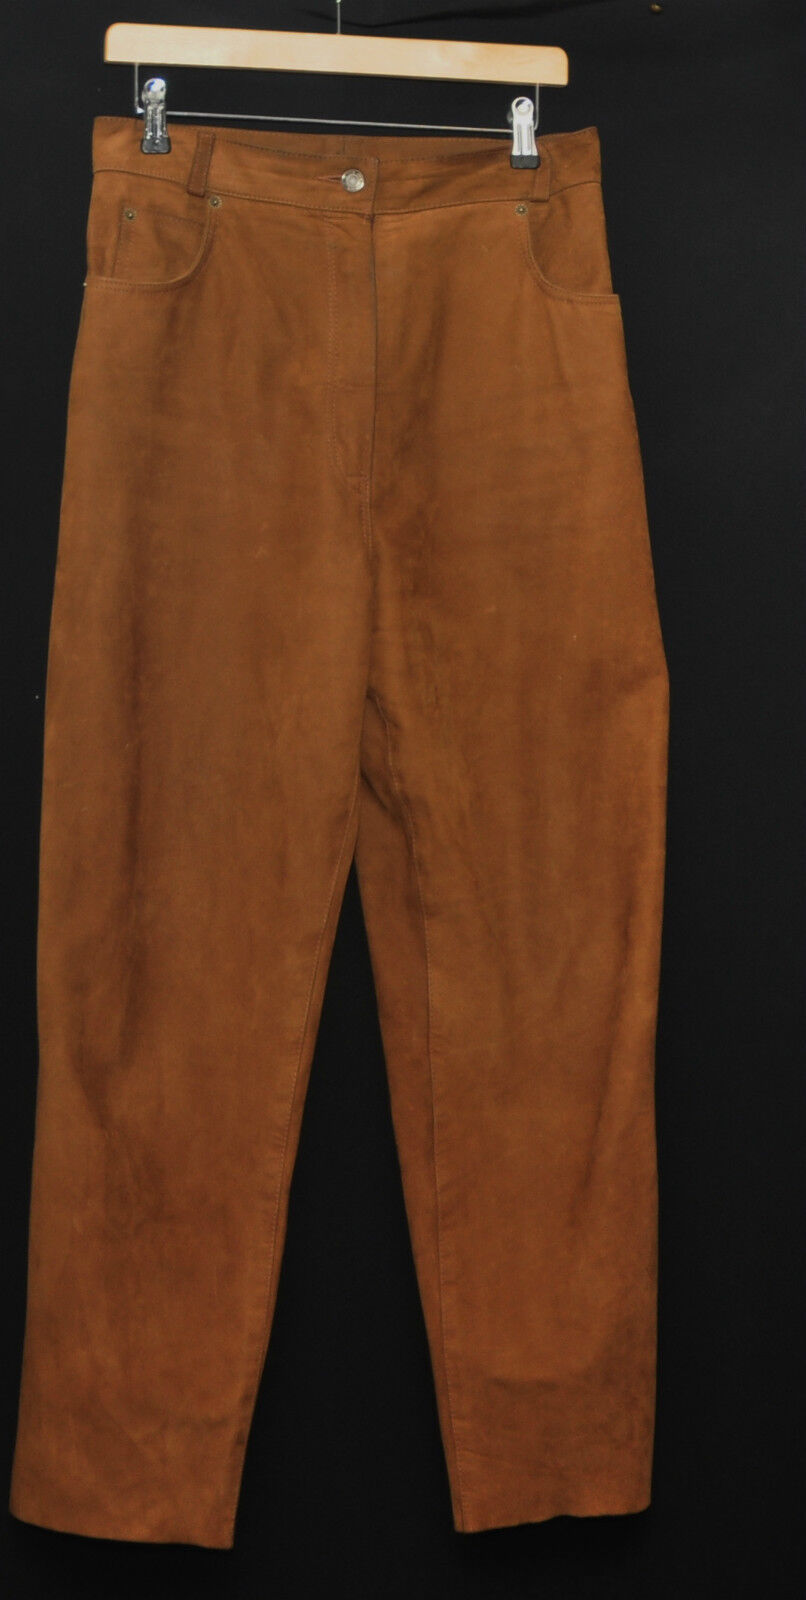 BEAUTIFUL VINTAGE REAL LEATHER SUEDE TAN braun TROUSERS  W 30  1980S